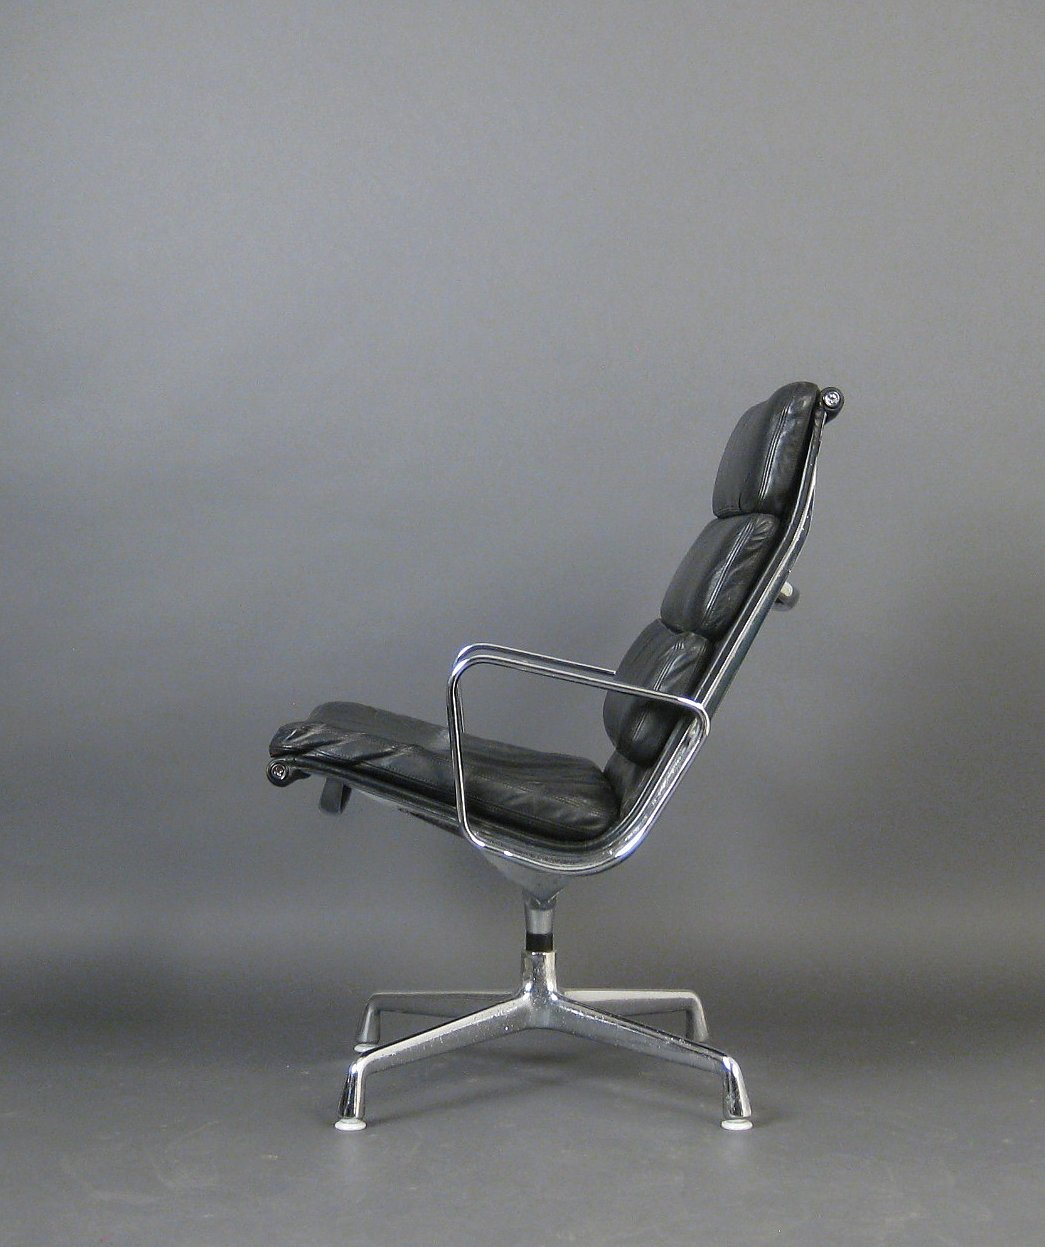 sessel charles eames lounge chair eames lounge chair awesome about a chair luxe charles eames. Black Bedroom Furniture Sets. Home Design Ideas